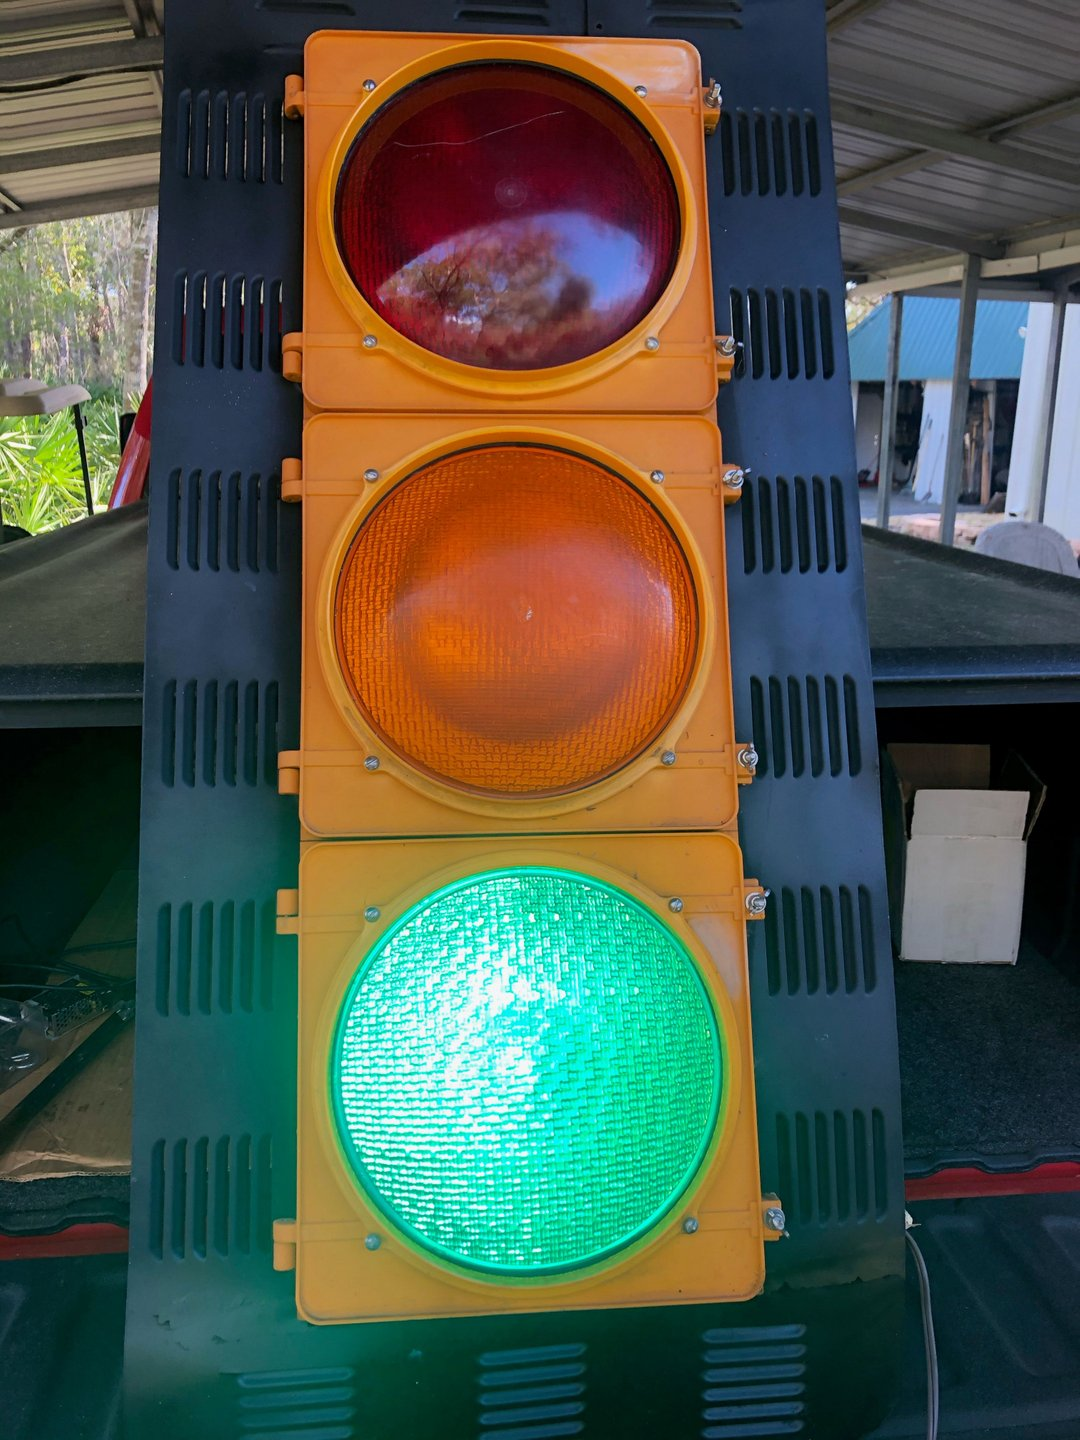 Cluster traffic light